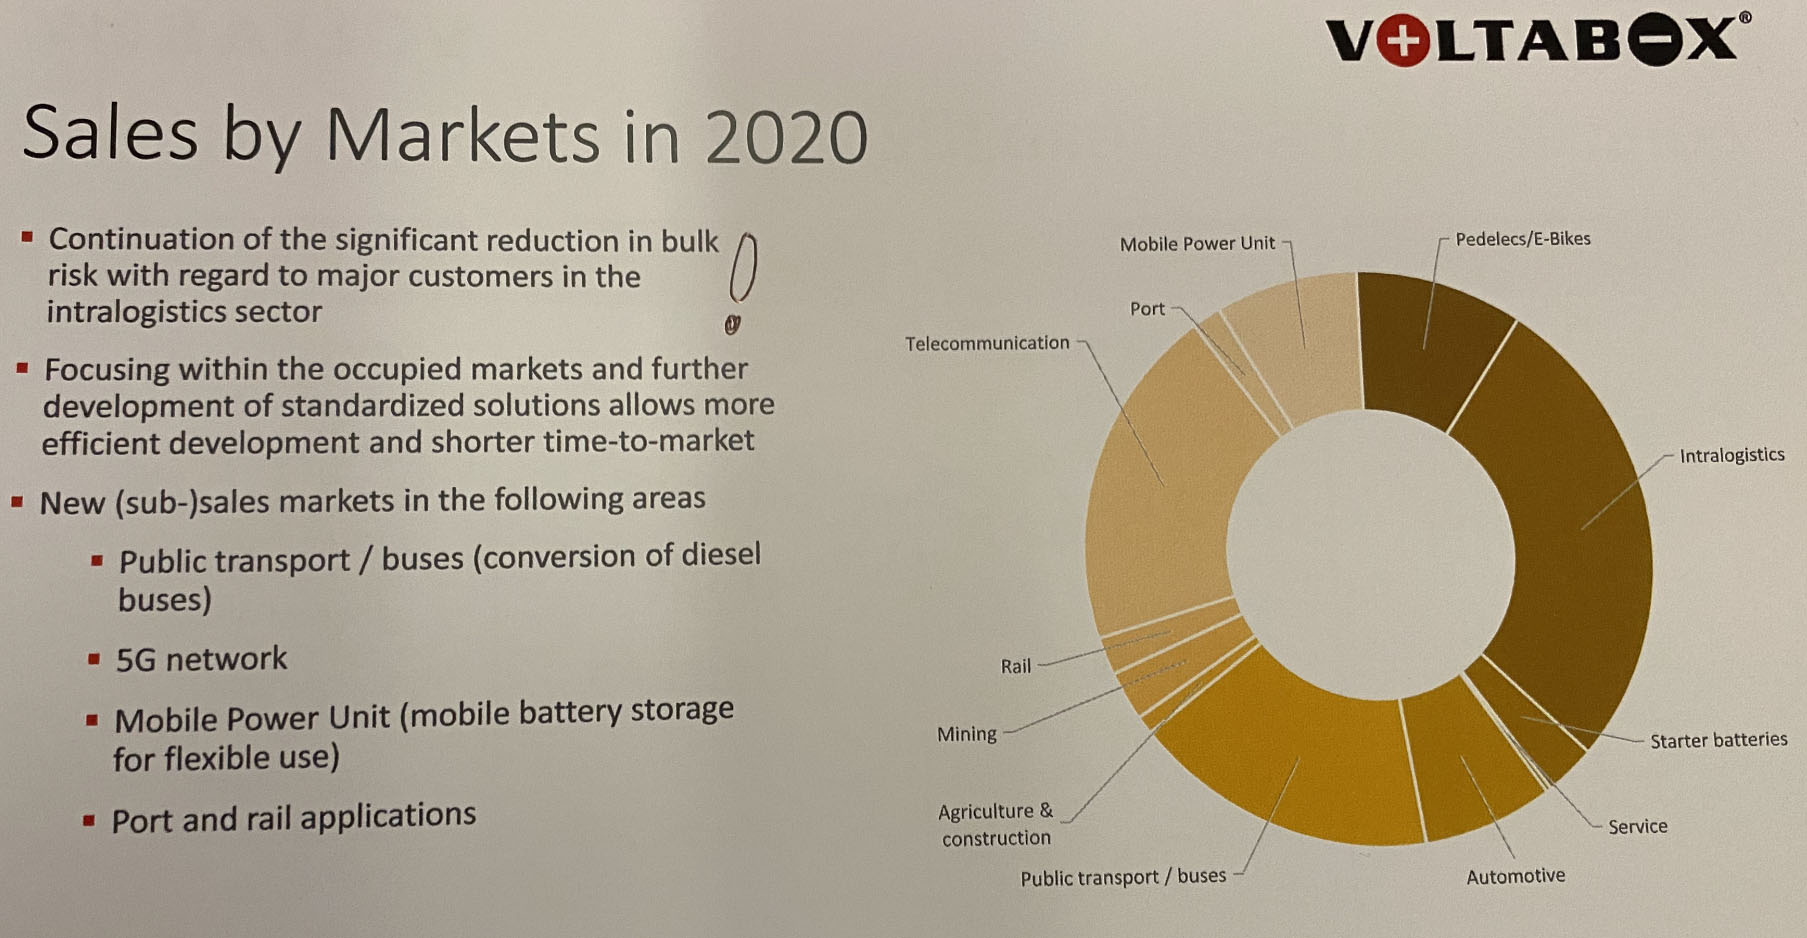 voltabox sales by markets in 2020